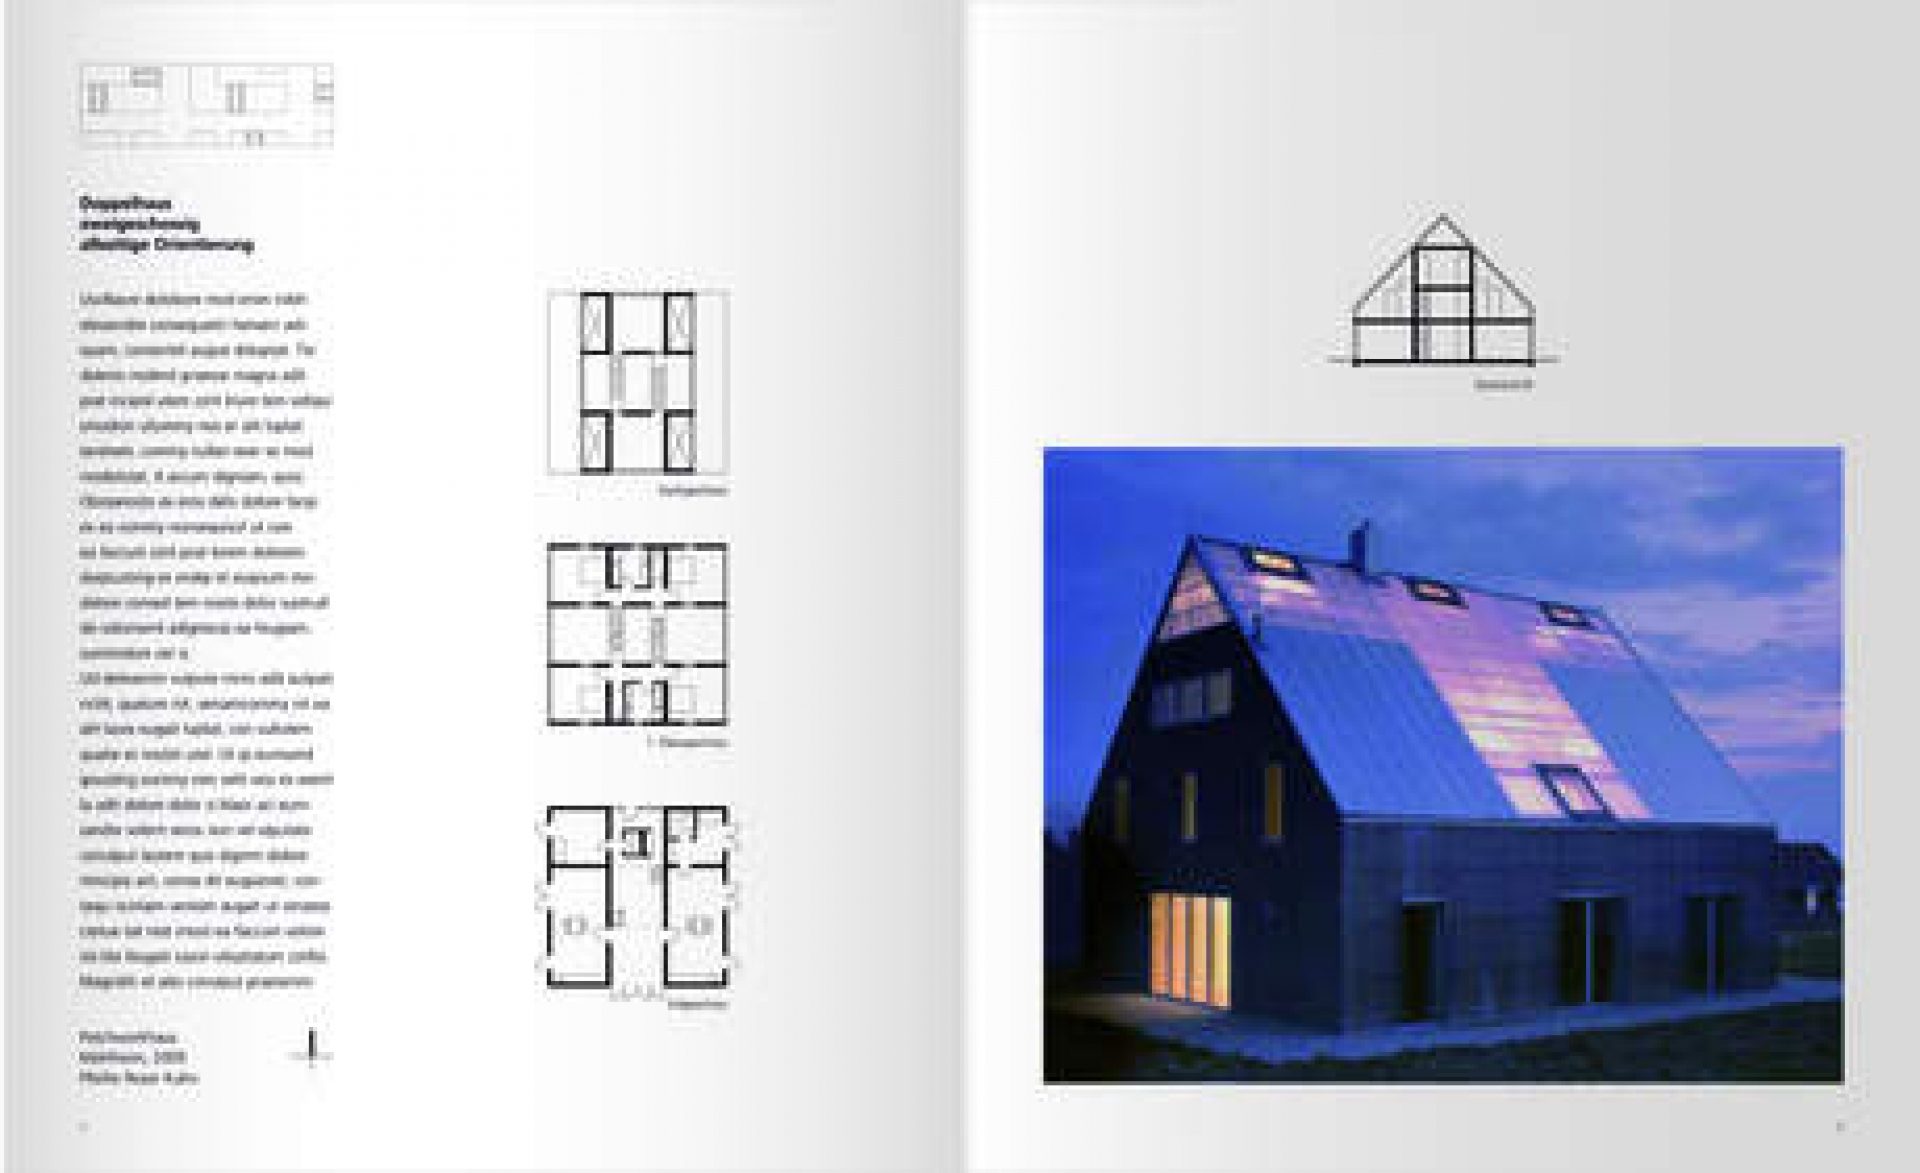 Freestanding Houses: A Housing Typology